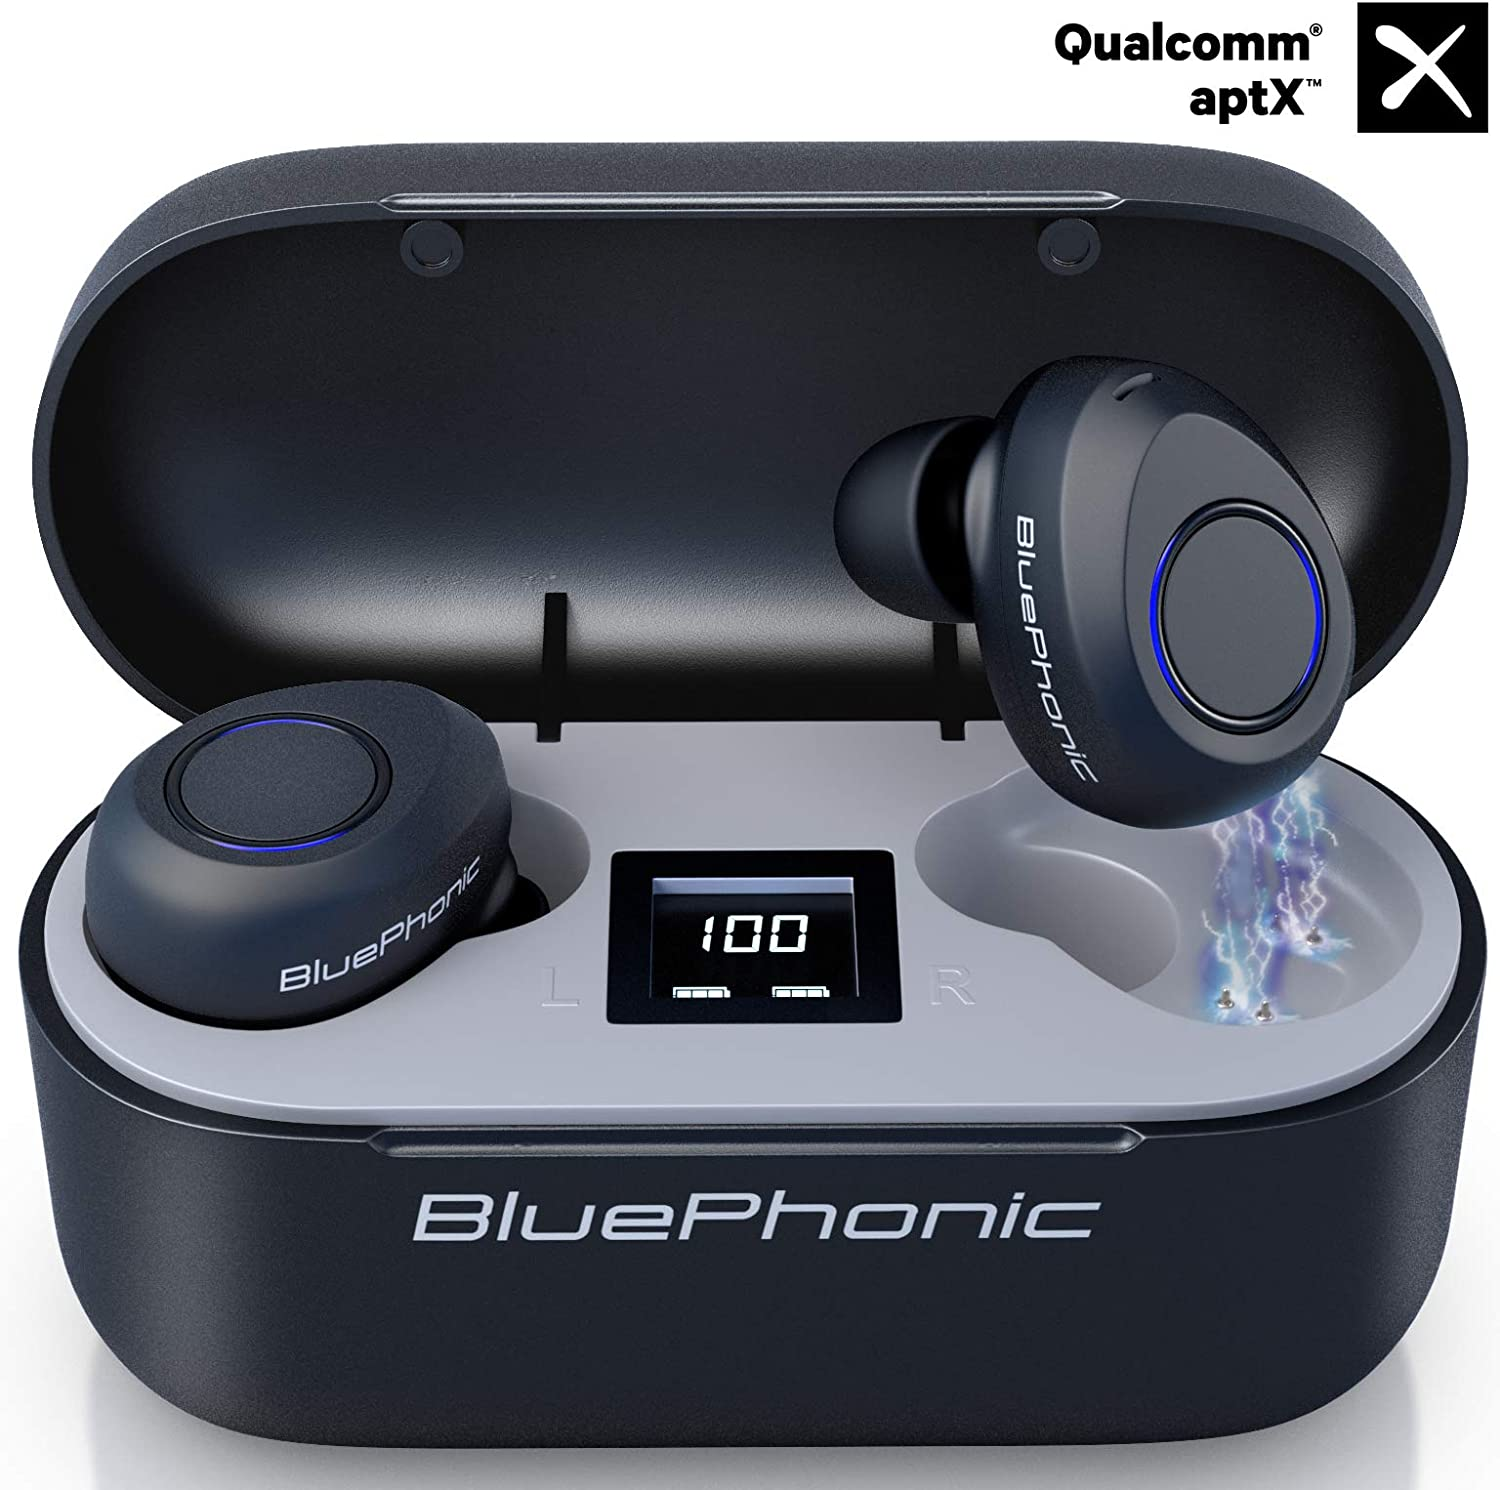 Bluephonic True Wireless Earbuds, CVC 8.0 Noise Reduction, Bluetooth 5.0 aptX HD Sound in Ear Totally Wireless Earphones, 32Hr Play Auto Pairing IPX7 Sweatproof Sport Headset, Built in Mic for Calls